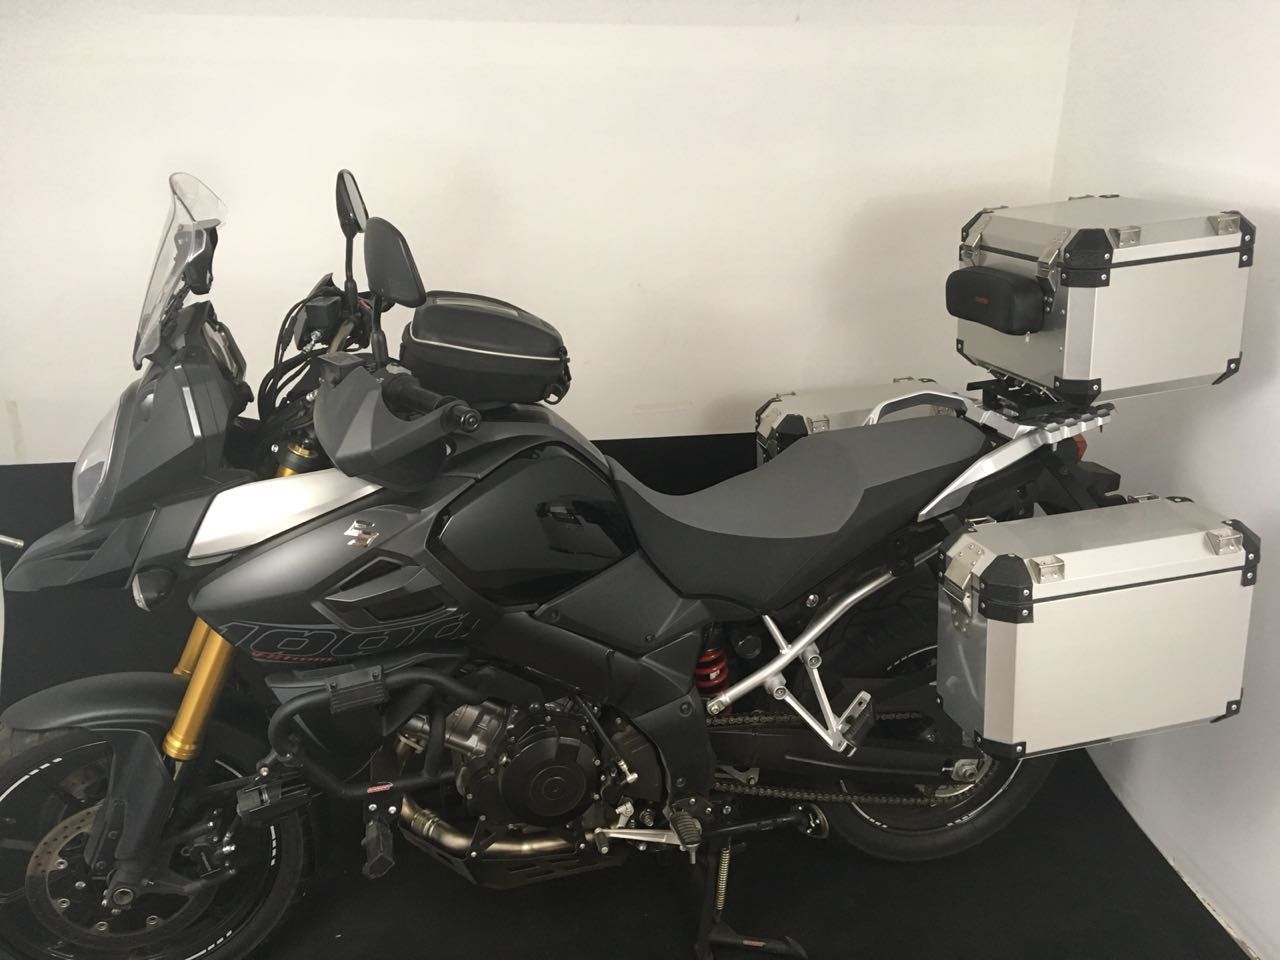 Kit Bauletos 43L V-Strom DL 1000 Aluminio Escovado Bráz